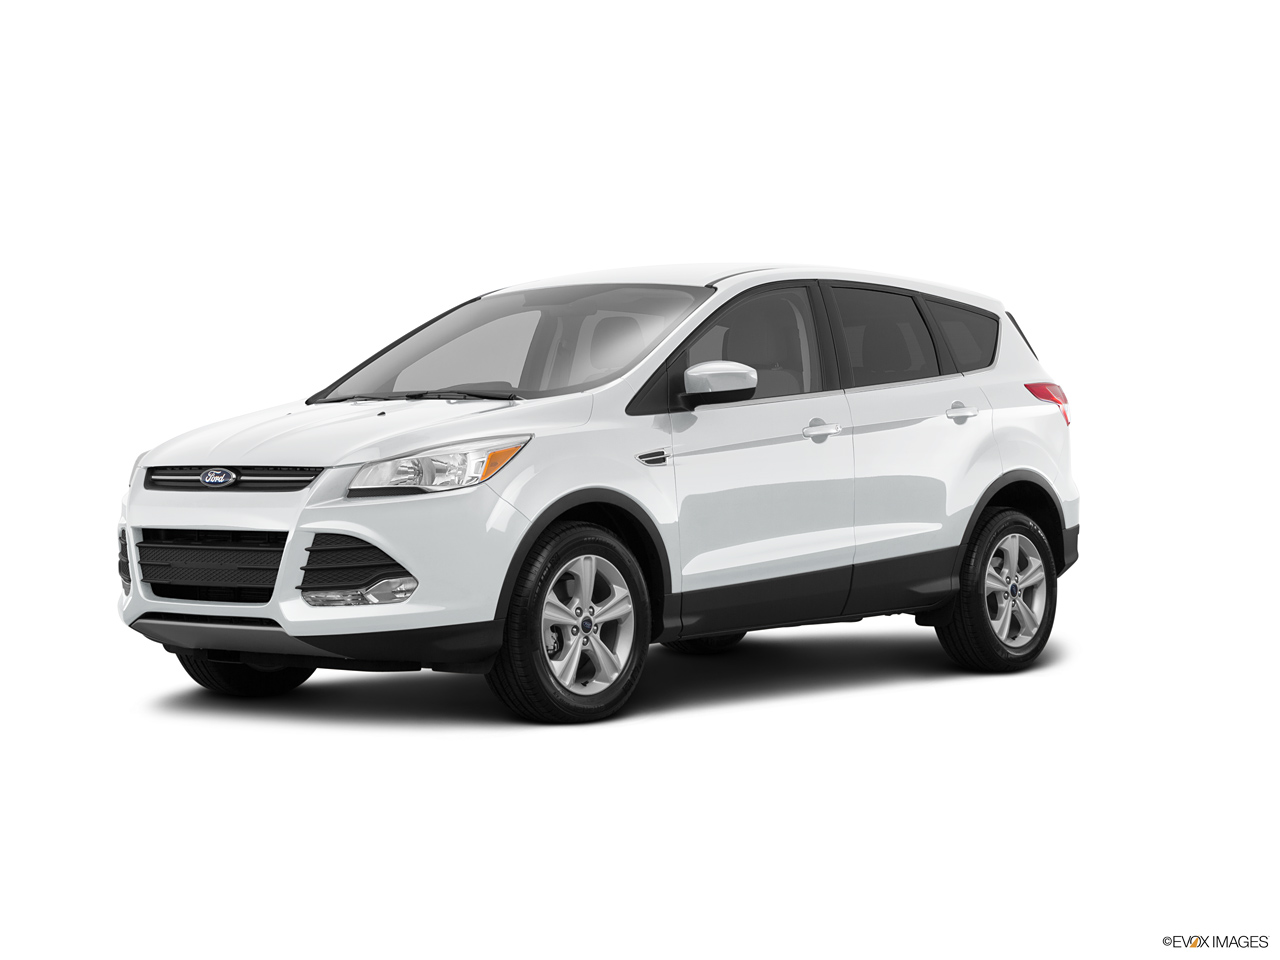 Volkswagen Lease Specials >> Ford Lease Takeover in Orangeville, ON: 2016 Ford Escape Automatic 2WD ID:#6573 • LeaseCosts Canada